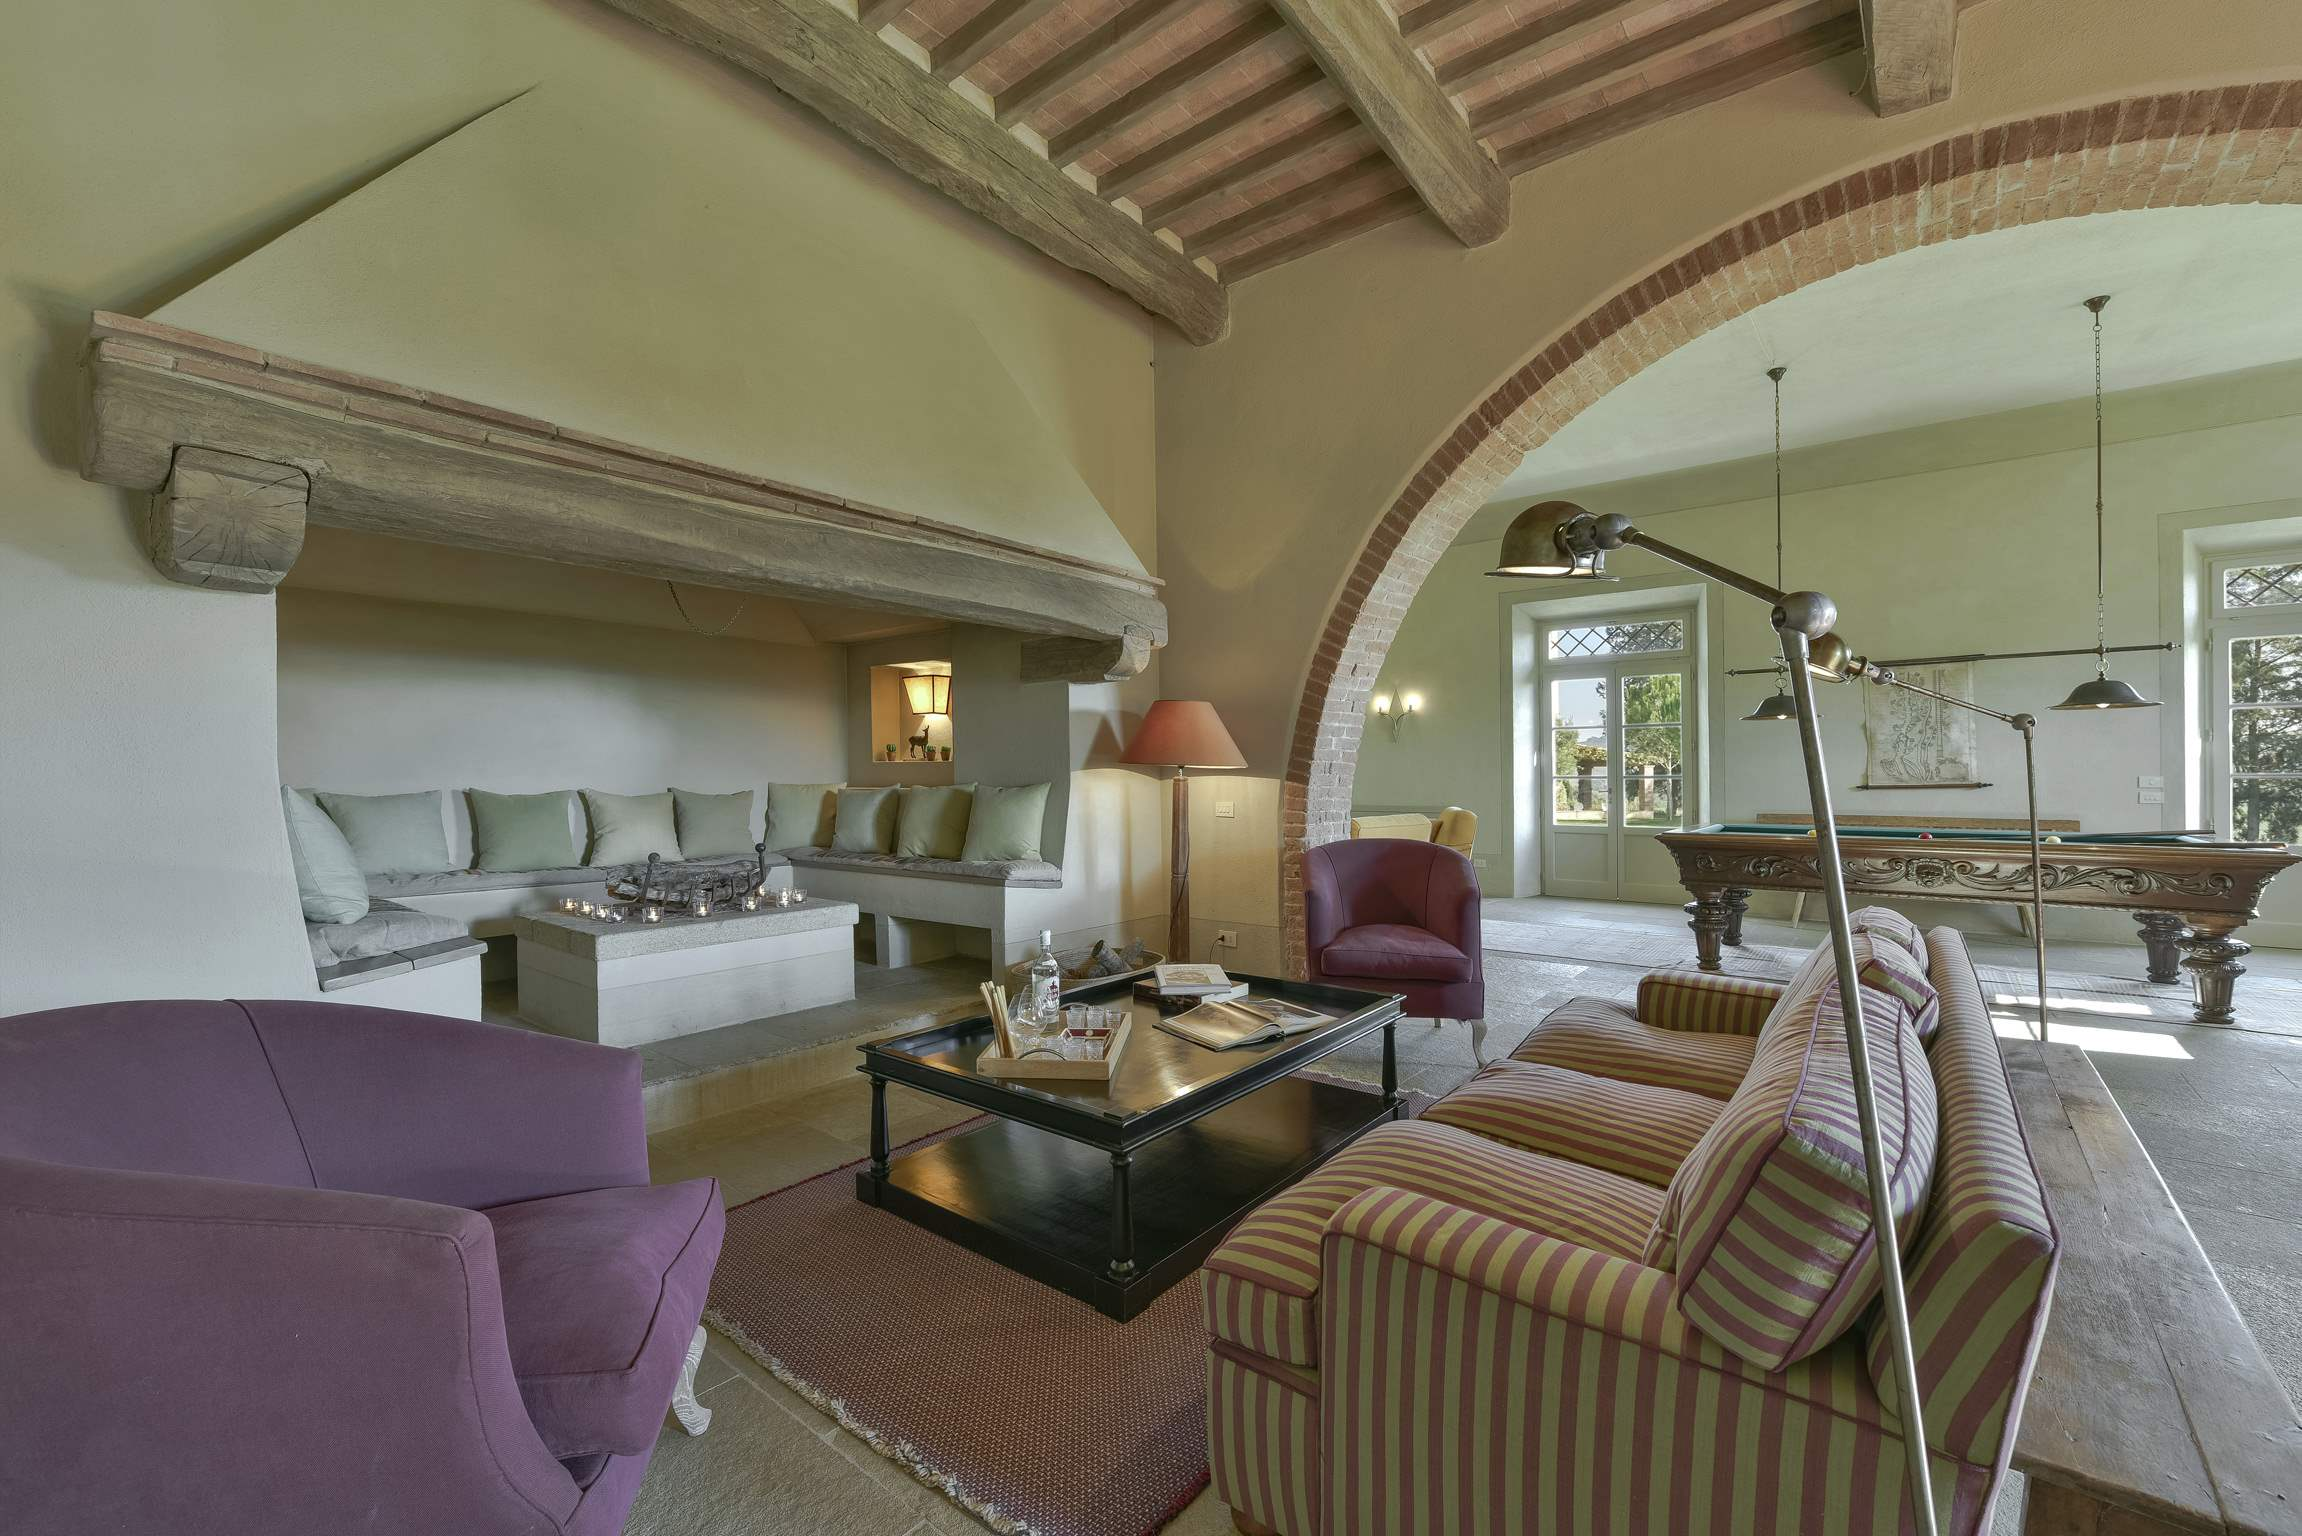 Villa Maremma 2, 9 bedroom villa in South Tuscany - Maremma, Tuscany Photo #7